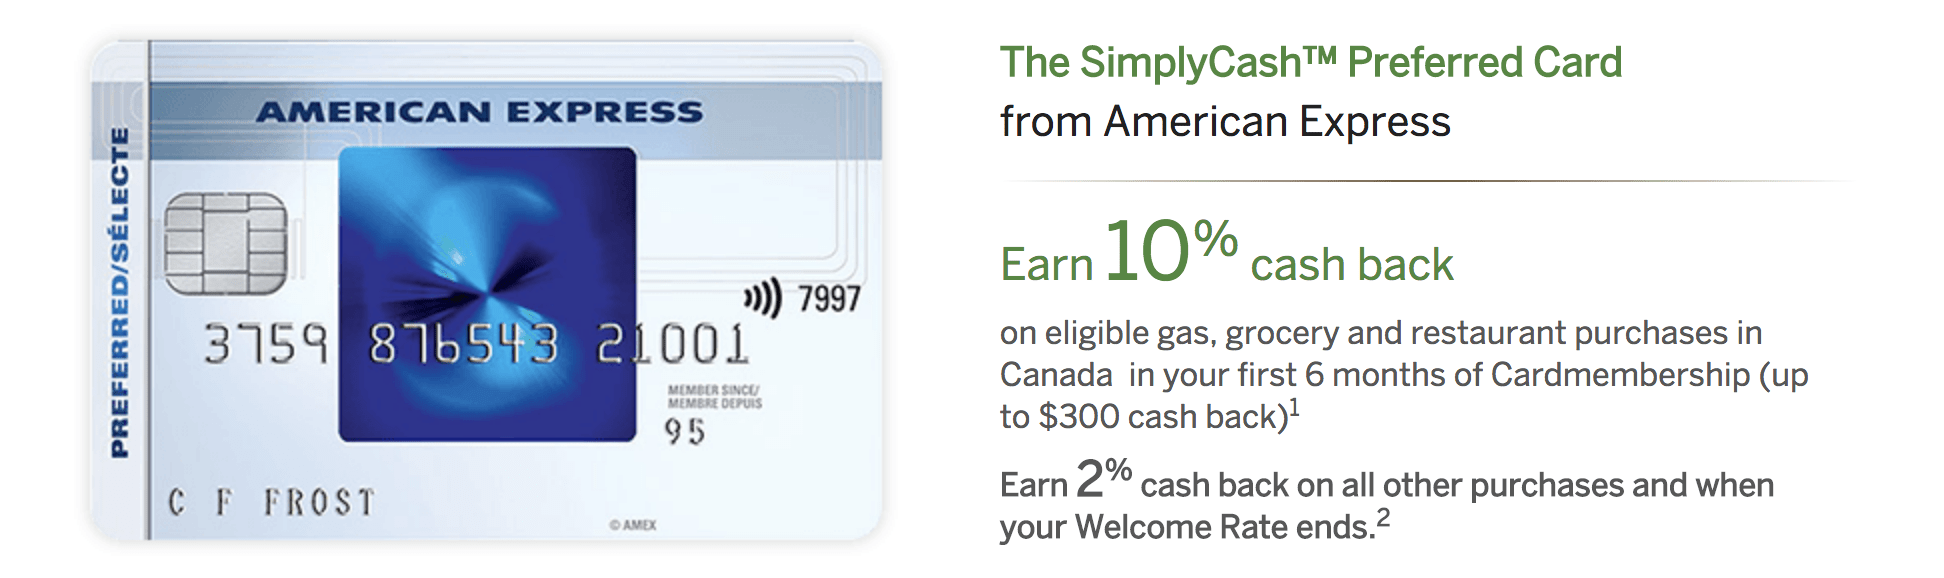 Canadians Get 10 Cash Back With Simplycash Preferred Card